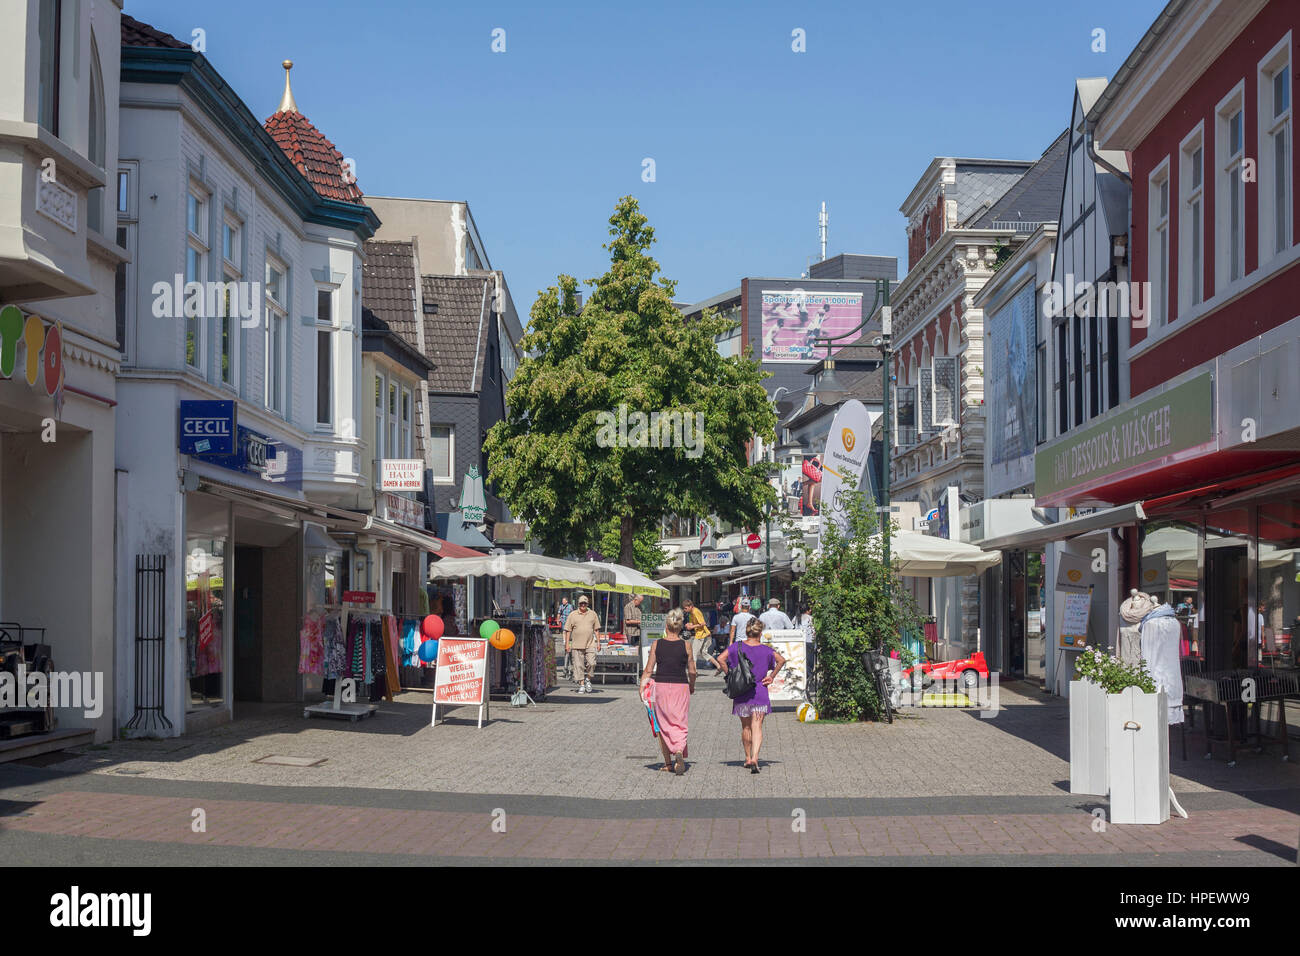 shopping street 39 lange stra e 39 delmenhorst lower saxony germany stock photo 134322645 alamy. Black Bedroom Furniture Sets. Home Design Ideas